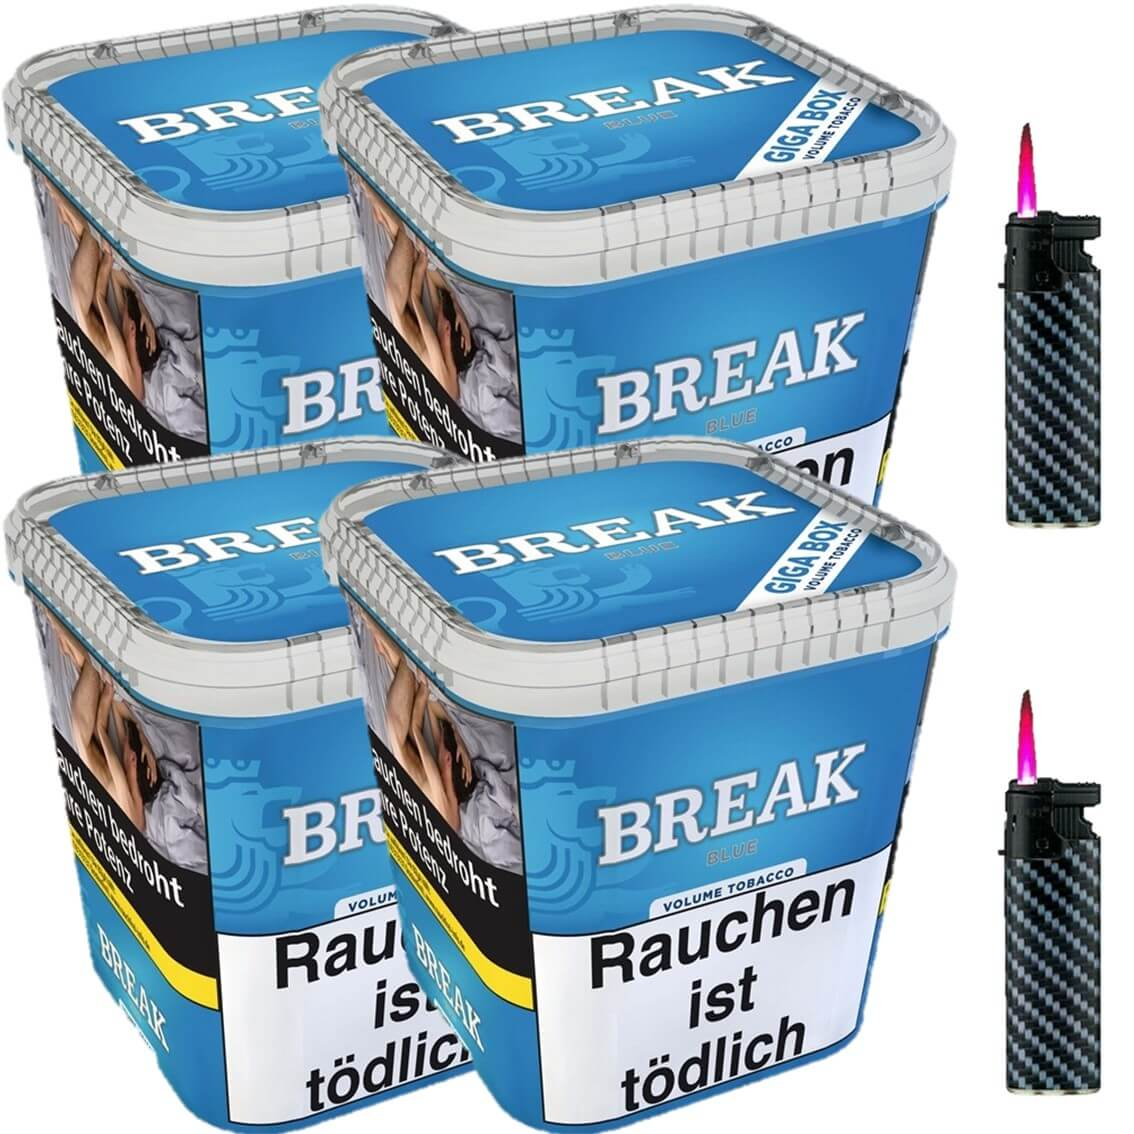 Break Blue / Blau 4 x 240g Volumentabak 2 x Sturmfeuerzeuge